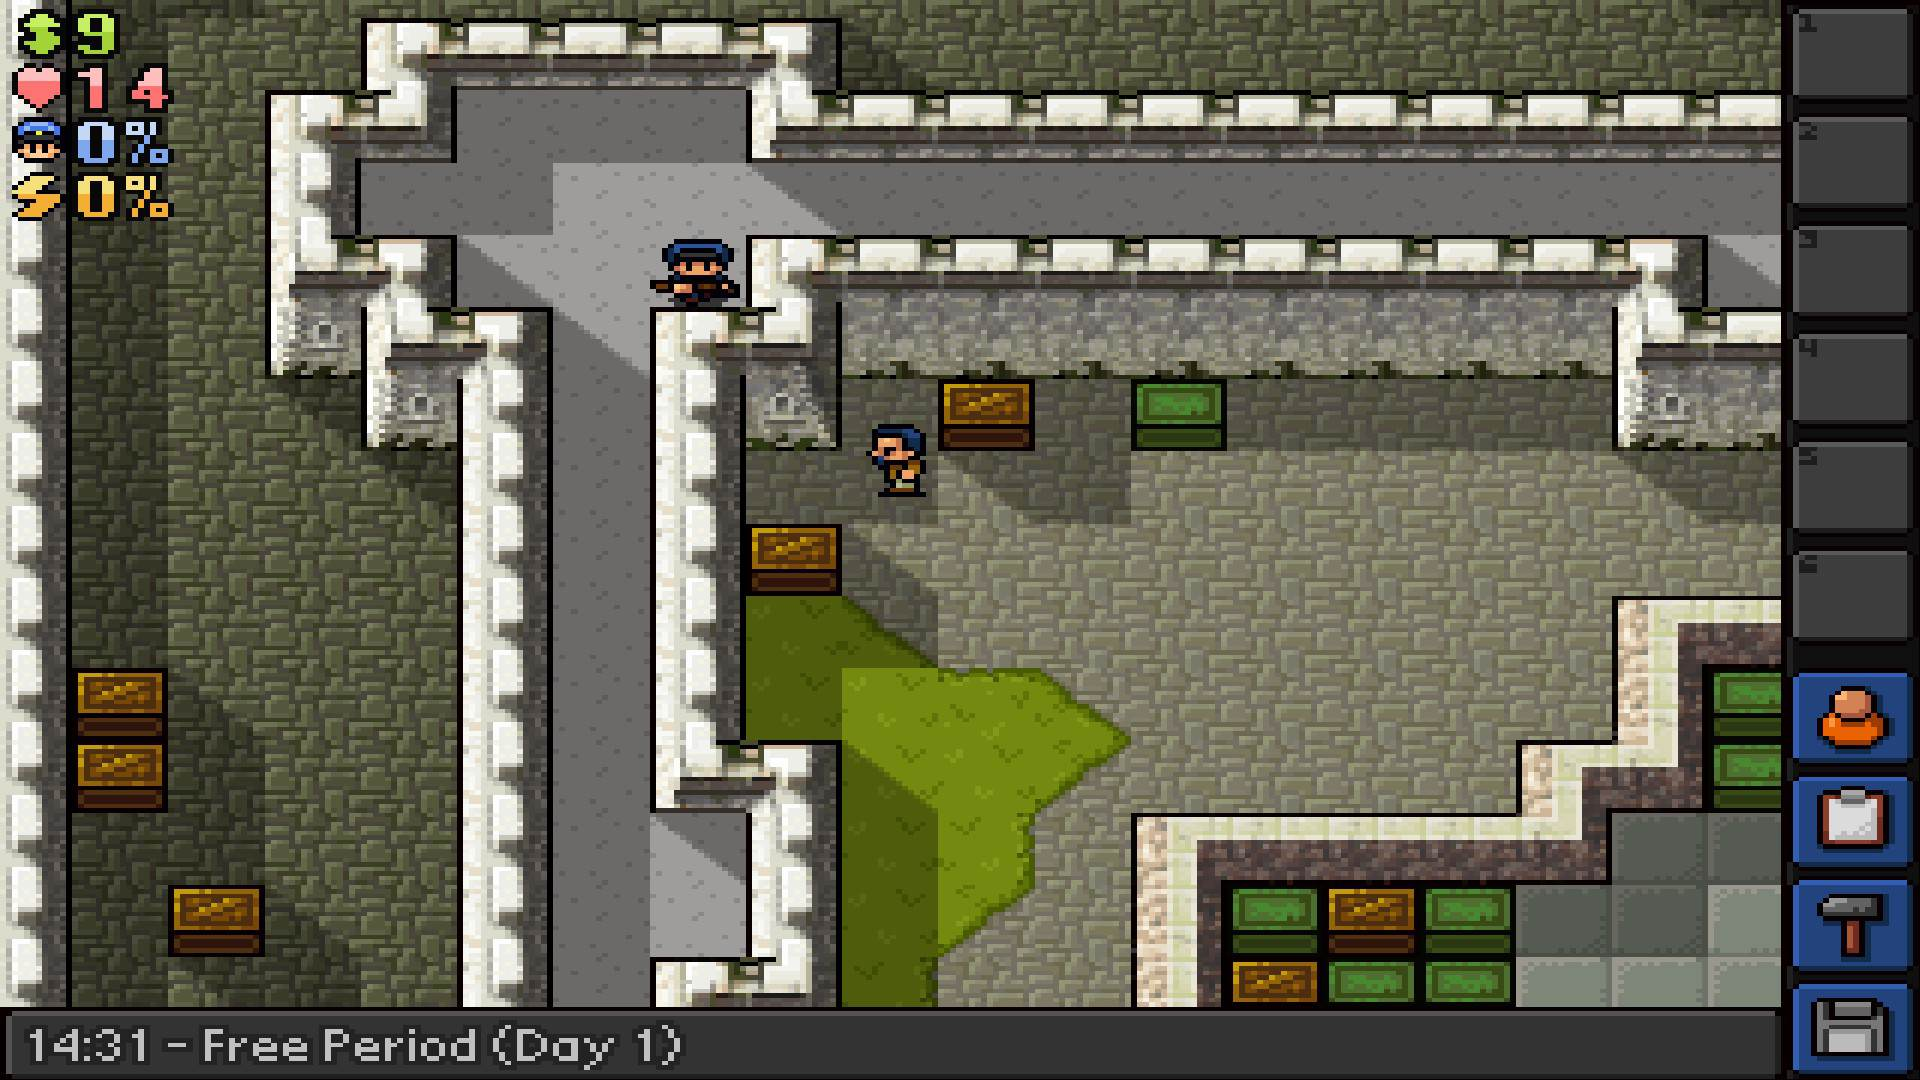 Free 'London Tower' Map Update for The Escapists!